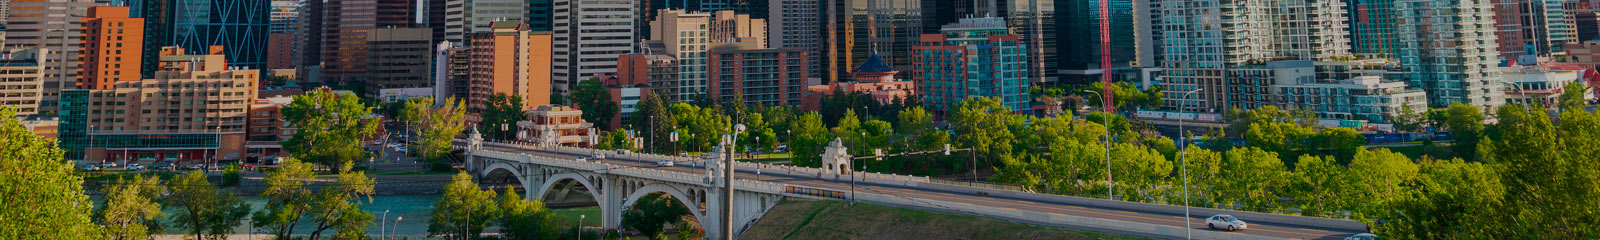 Alberta is the fastest growing province in Canada. Learn why the province is slowly becoming a favorite immigration hotspot.